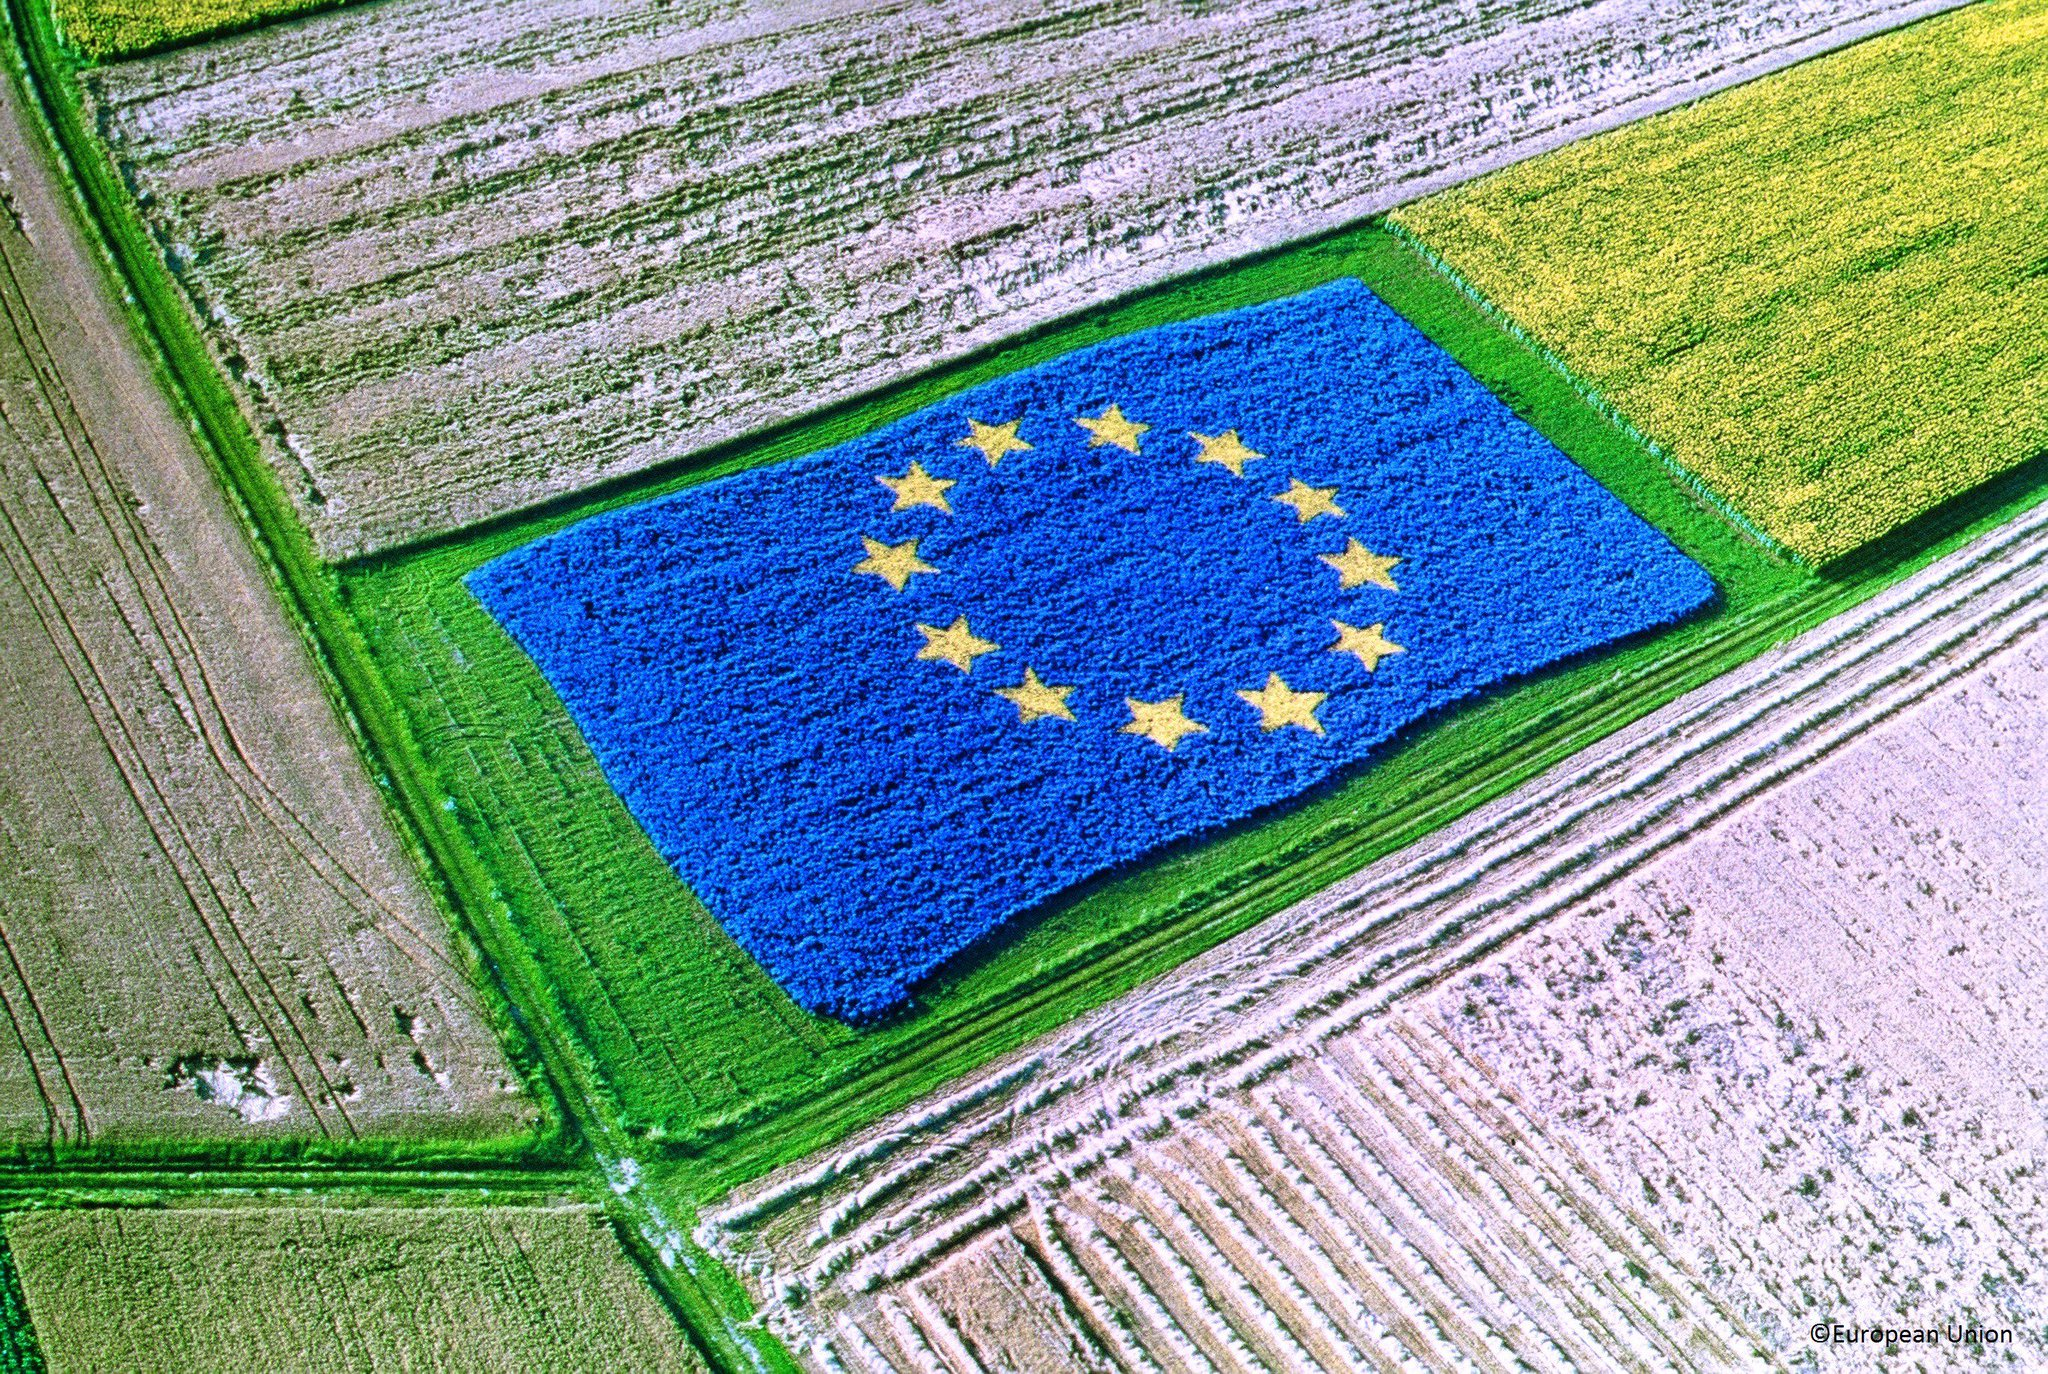 #ficompass conference explains #EIB investment assistance for Europe's rural economy including agri-food quality and climate action https://t.co/1oexzYnY9S